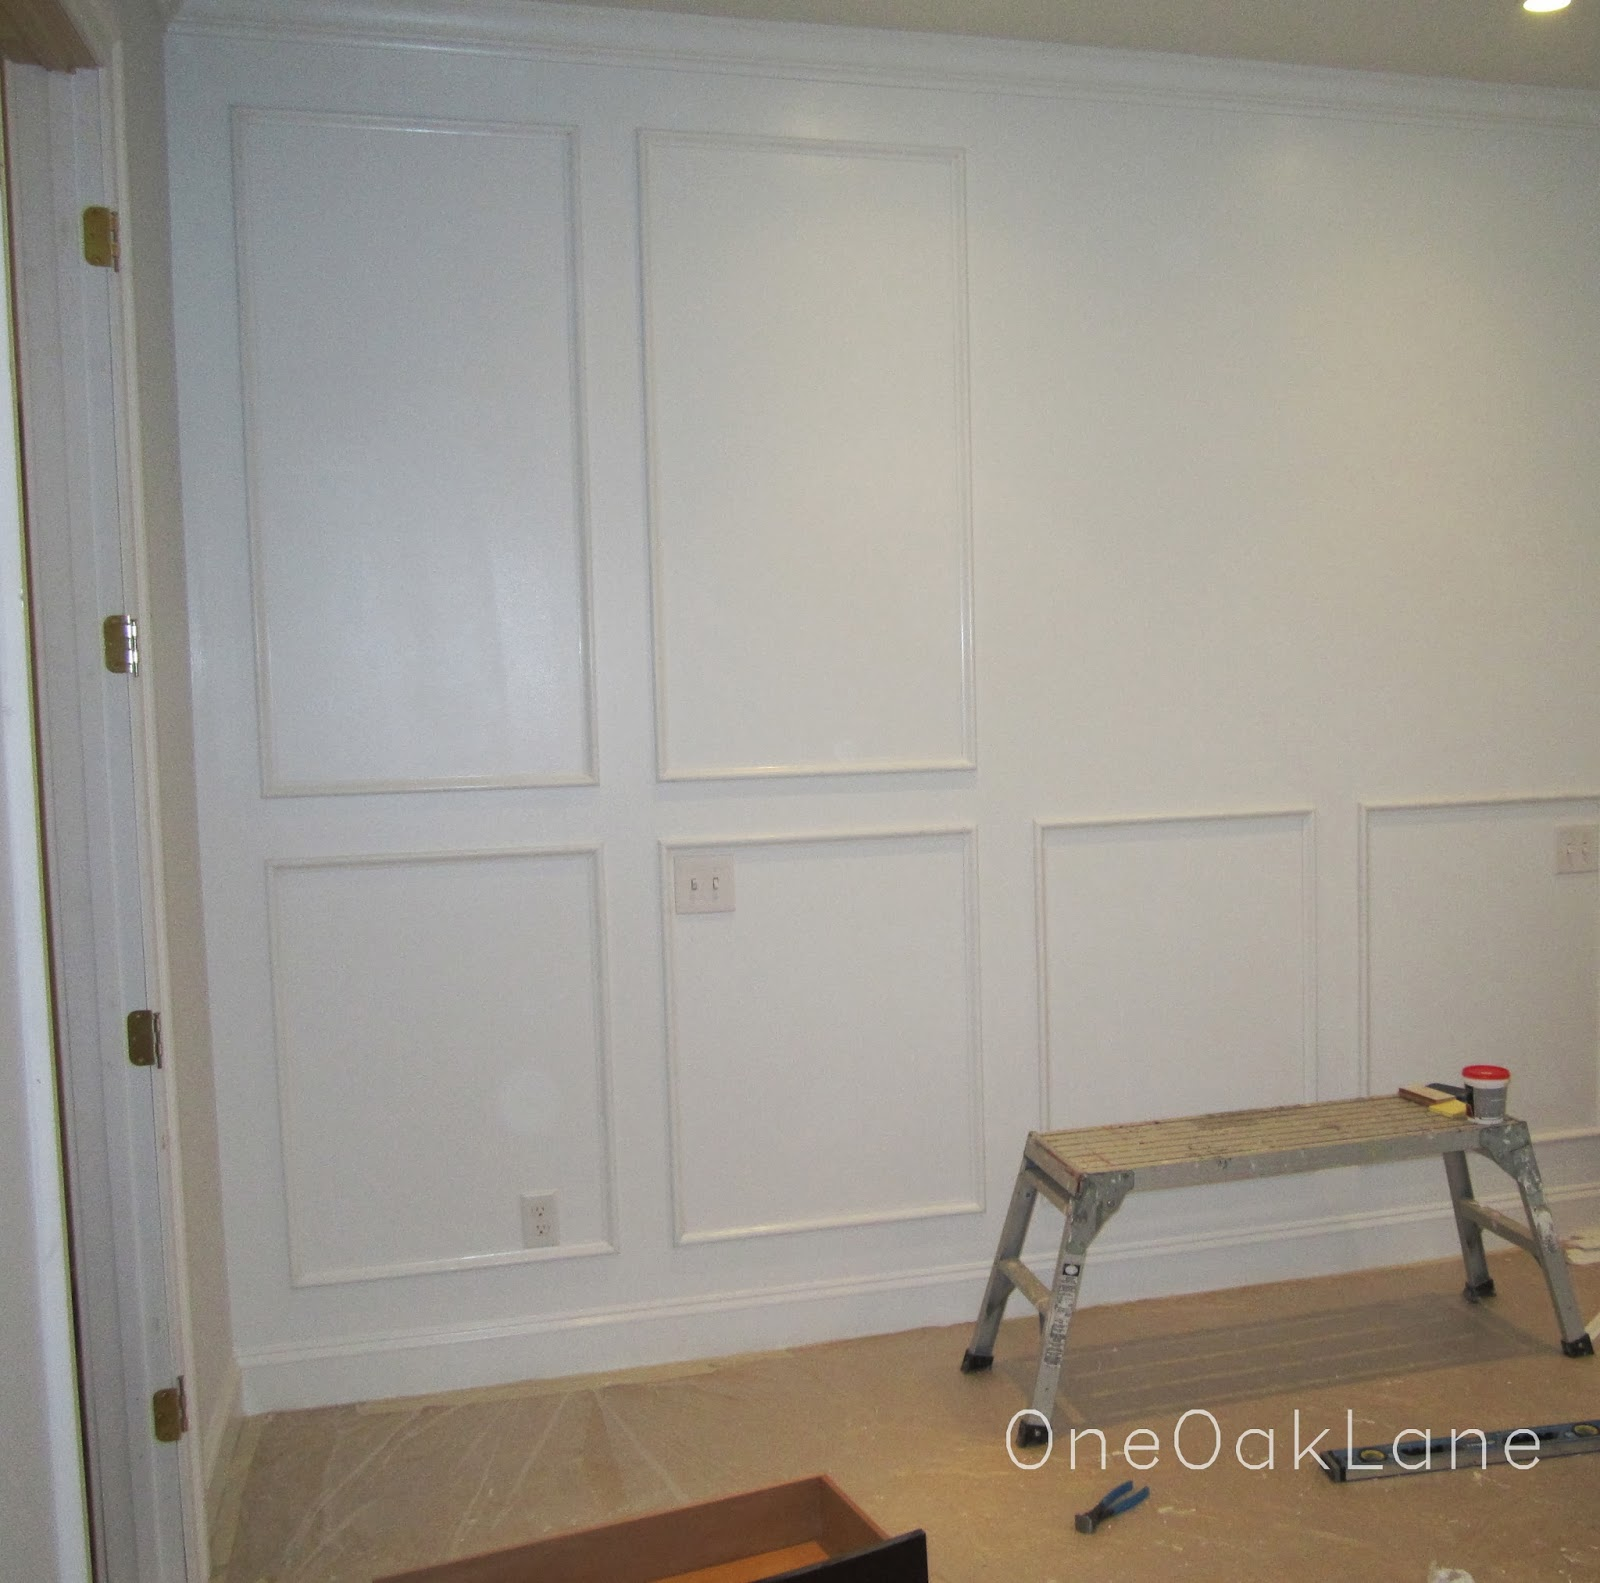 One Oak Lane: Accent Wall: White Molding